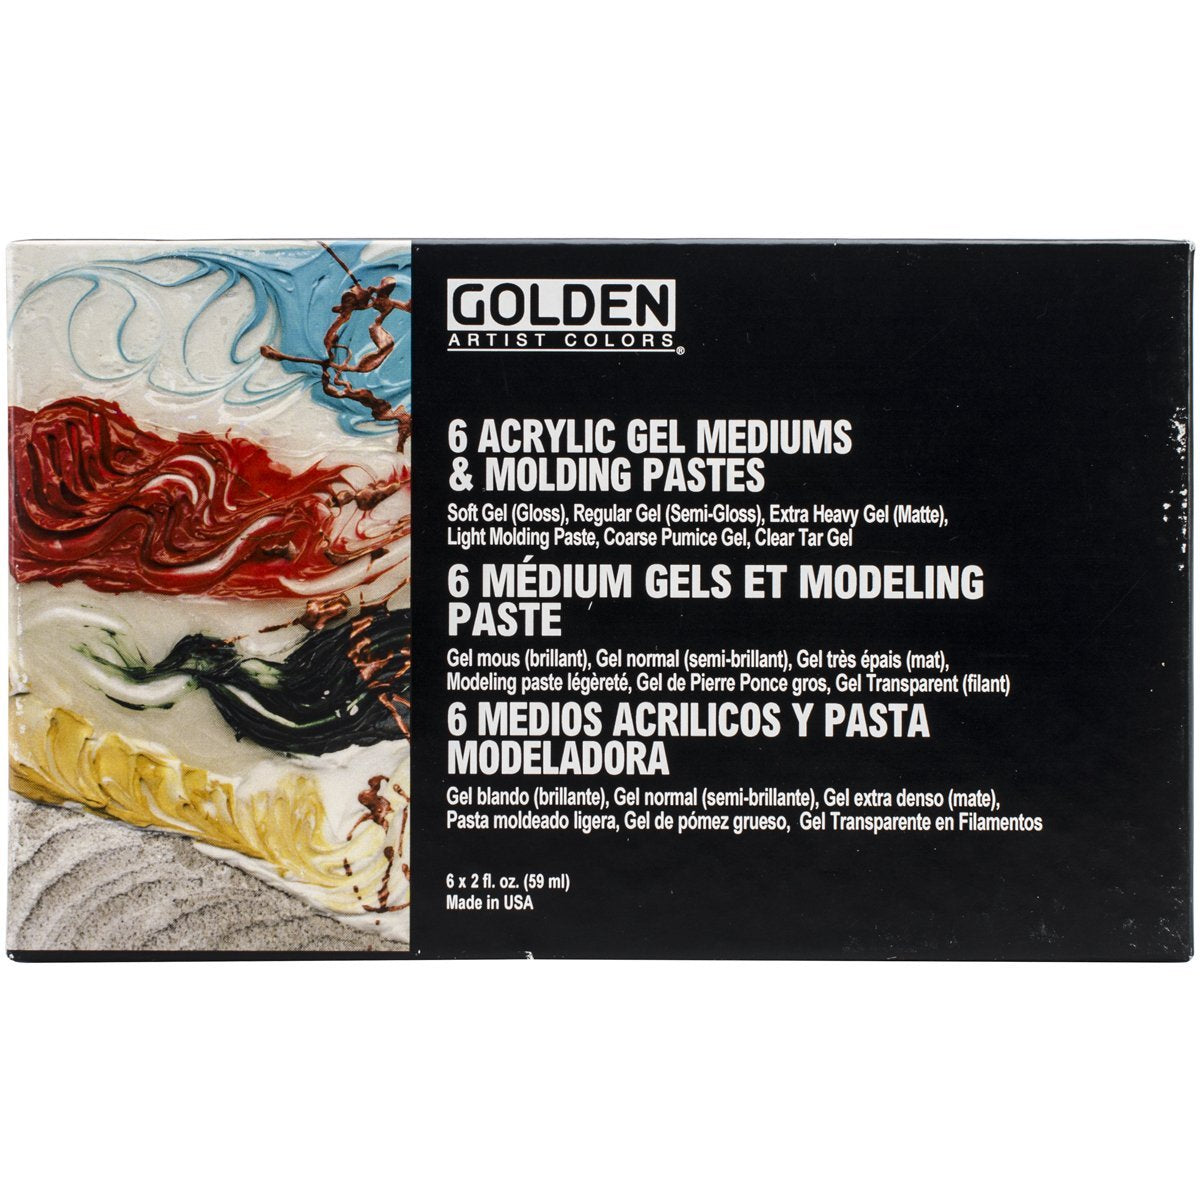 Golden Introductory Gel Mediums and Modeling Pastes Set